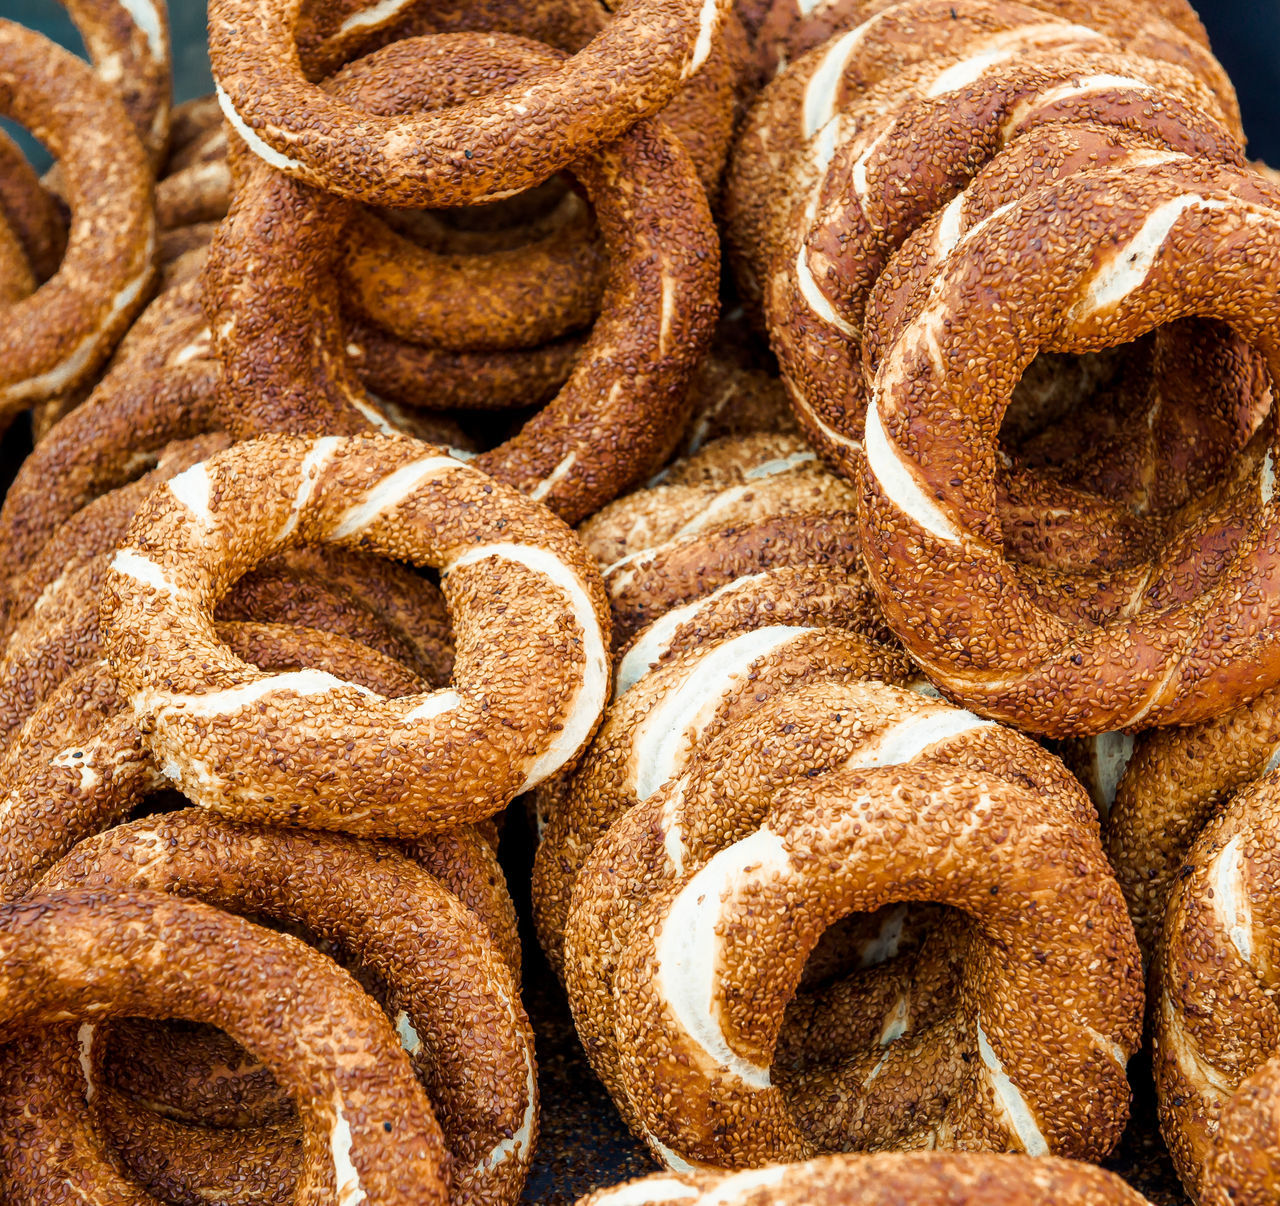 Turkish bagel, also known as simit. It is a circular bread with sesame seeds Alanya/Turkey Antalya Turkey Bagel Bakery Bread Brown Circular Close-up Food Fresh Homemade Lot Many Middle East No People Objects Pastry Sesame Seed Simit Street Food Tasty Traditional Turkey Turkish Bagels Turkish Bazaar